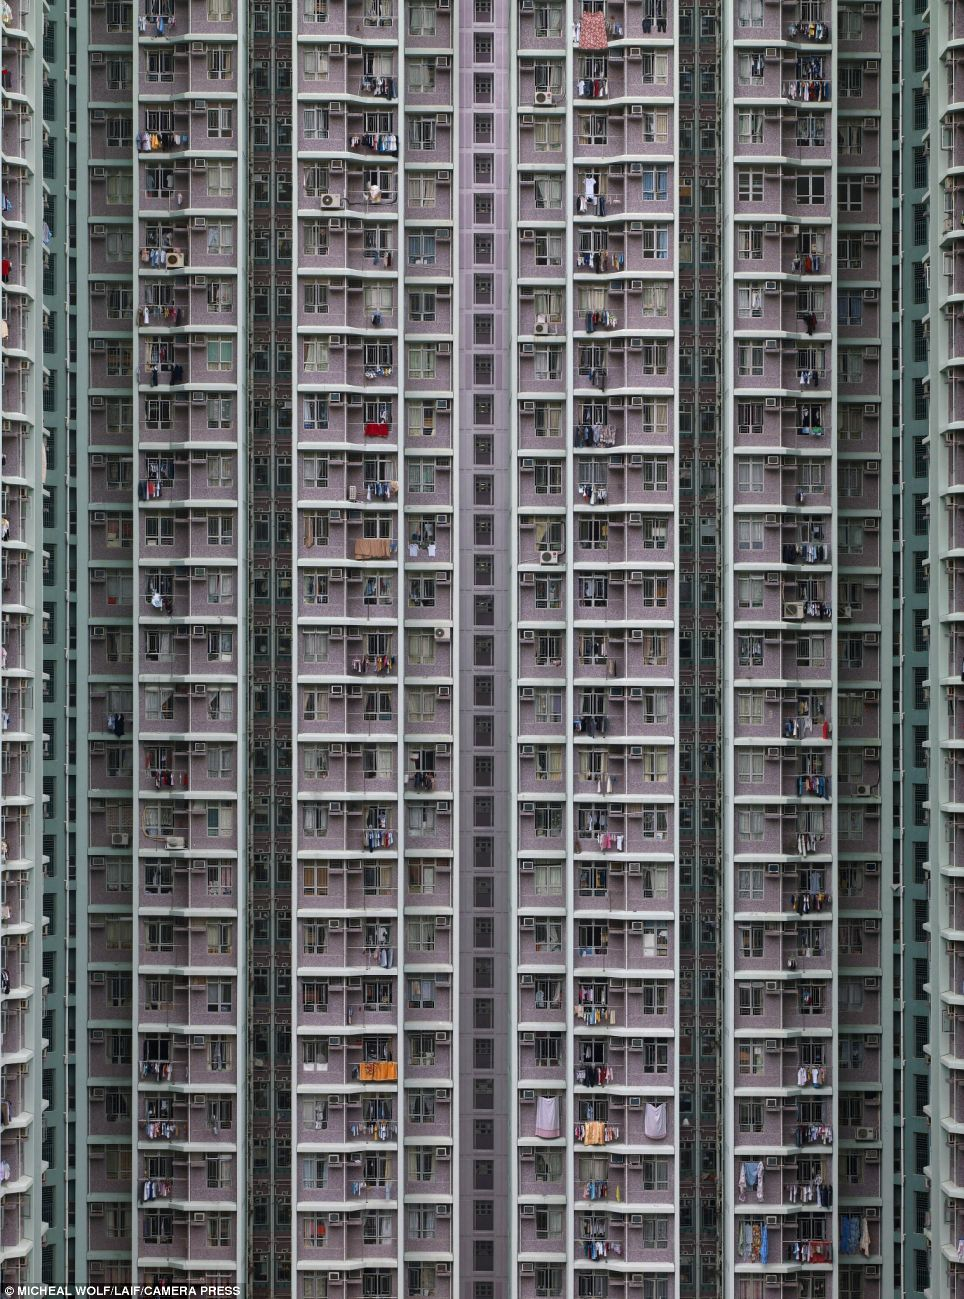 Neighbours: Despite being one of the world's richest cities, the high cost of renting in Hong Kong means many of its residents are forced to set up home in incredibly cramped living spaces